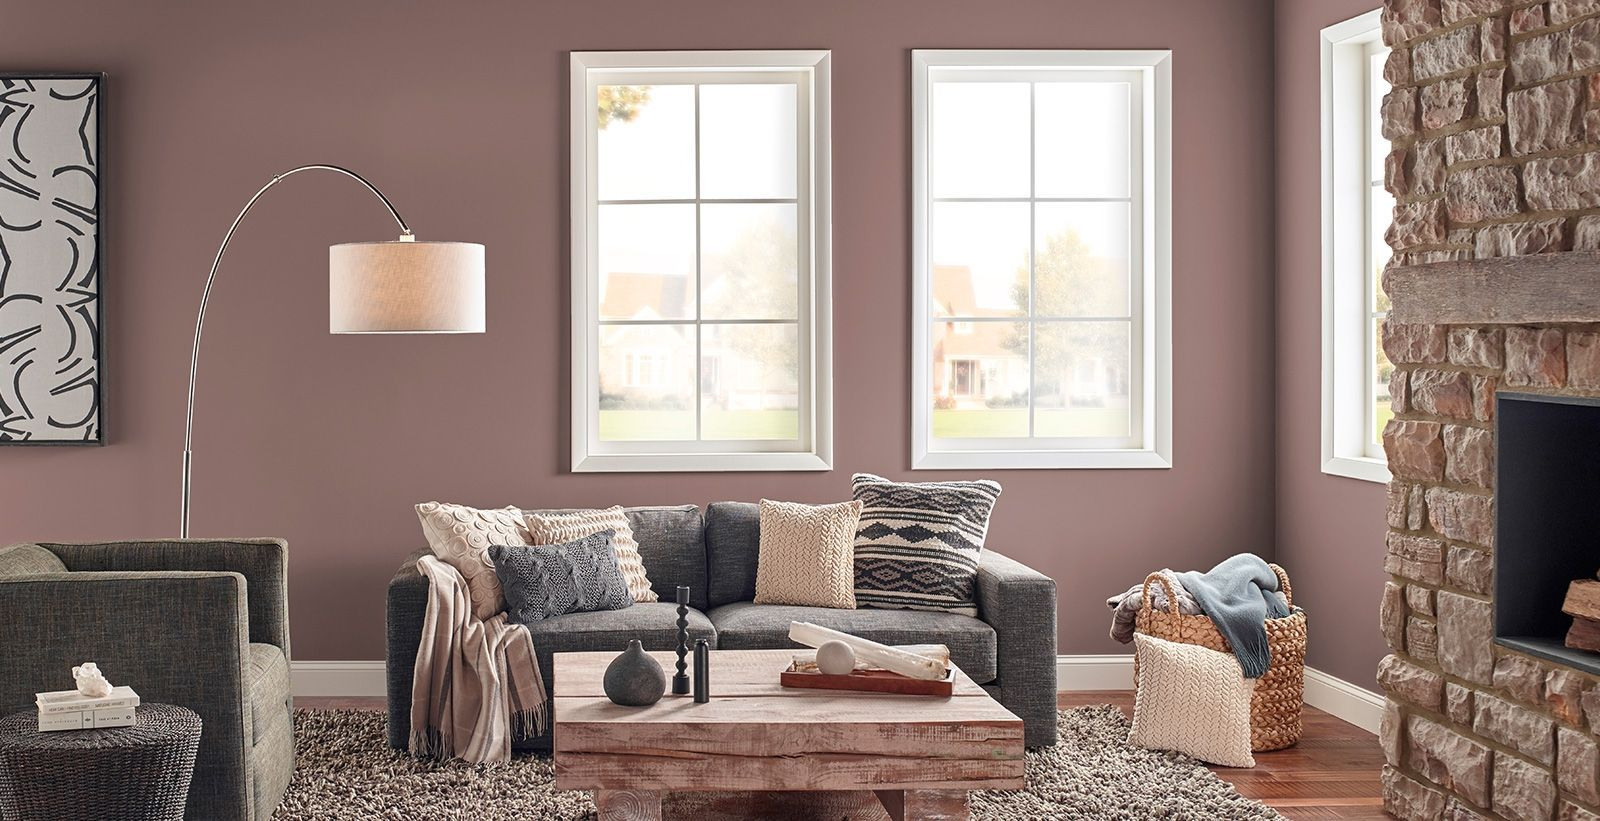 Calming Living Room Ideas And Inspirational Paint Colors Behr Throughout Awesome Awesome Behr Rustic Glam Living Room Glam Living Room Living Room Colors